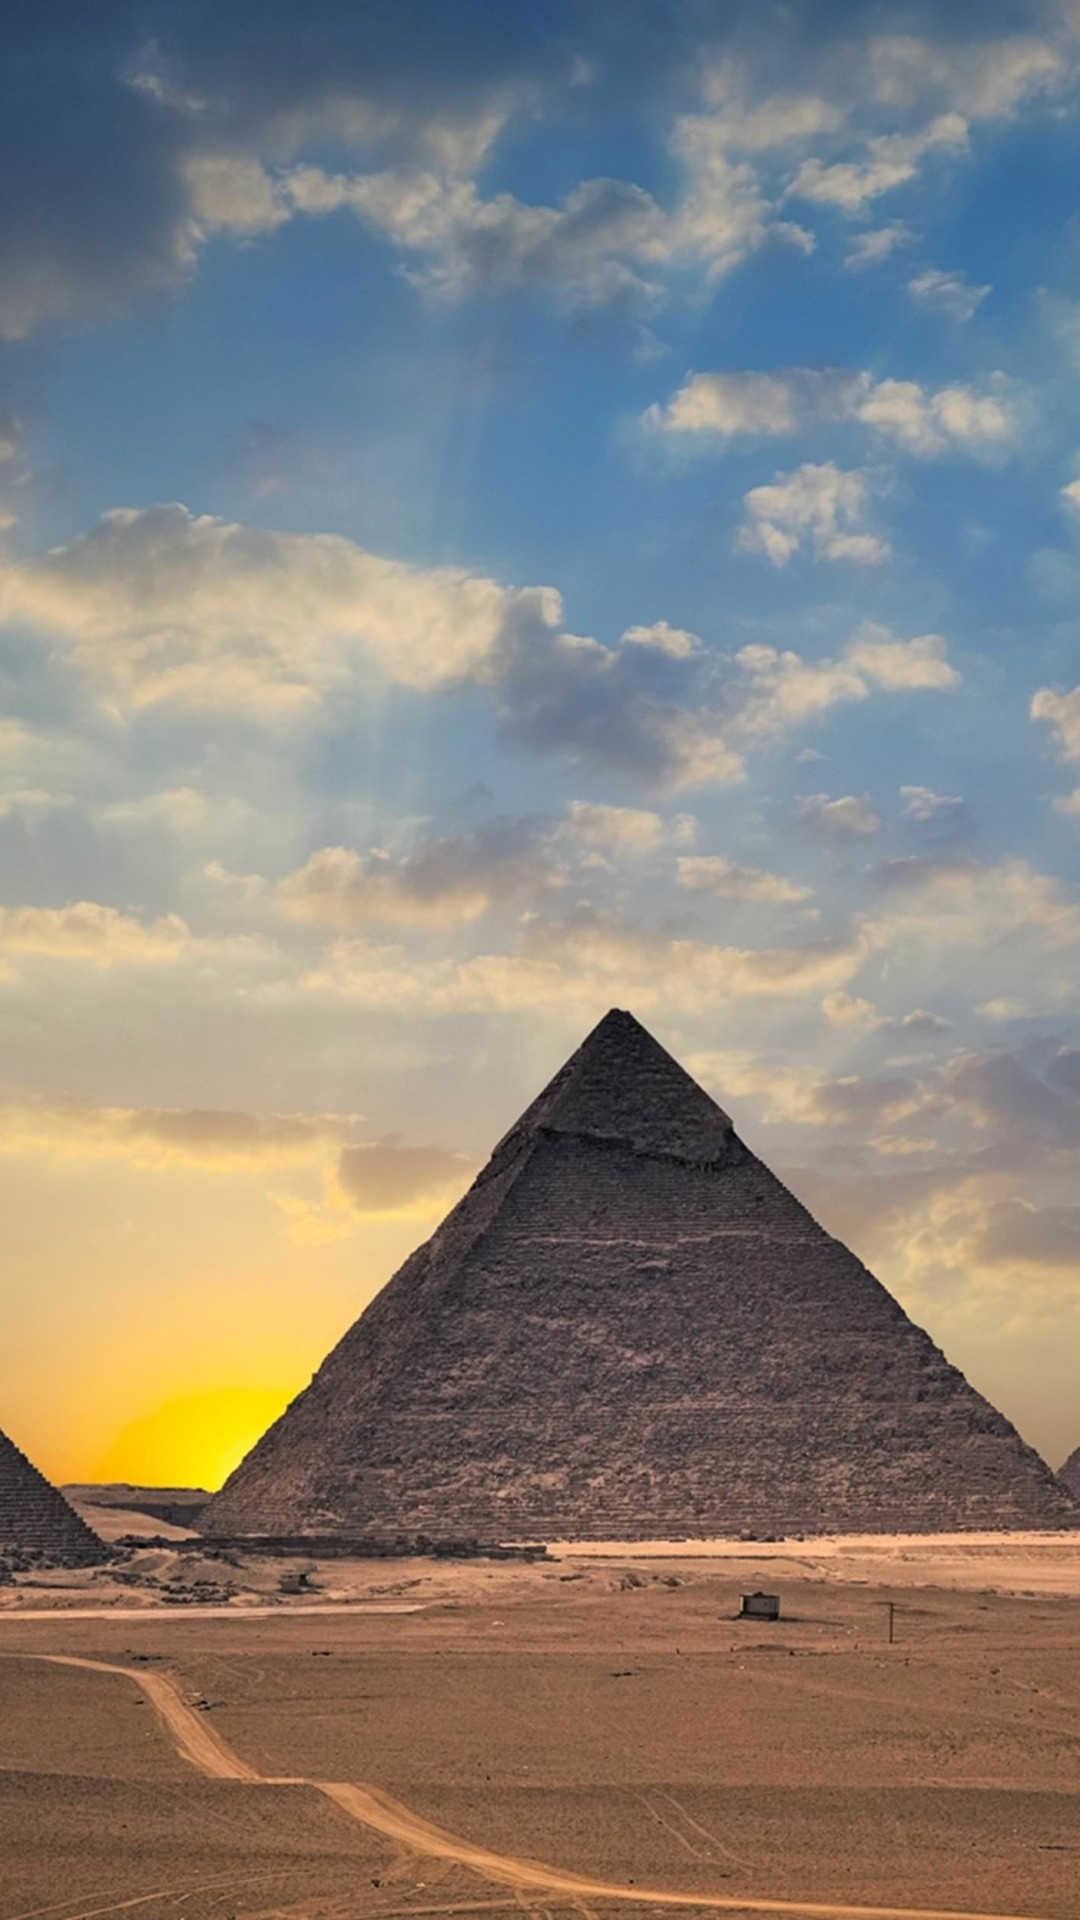 The Great Pyramids of Giza Wallpaper for SAMSUNG Galaxy Note 3